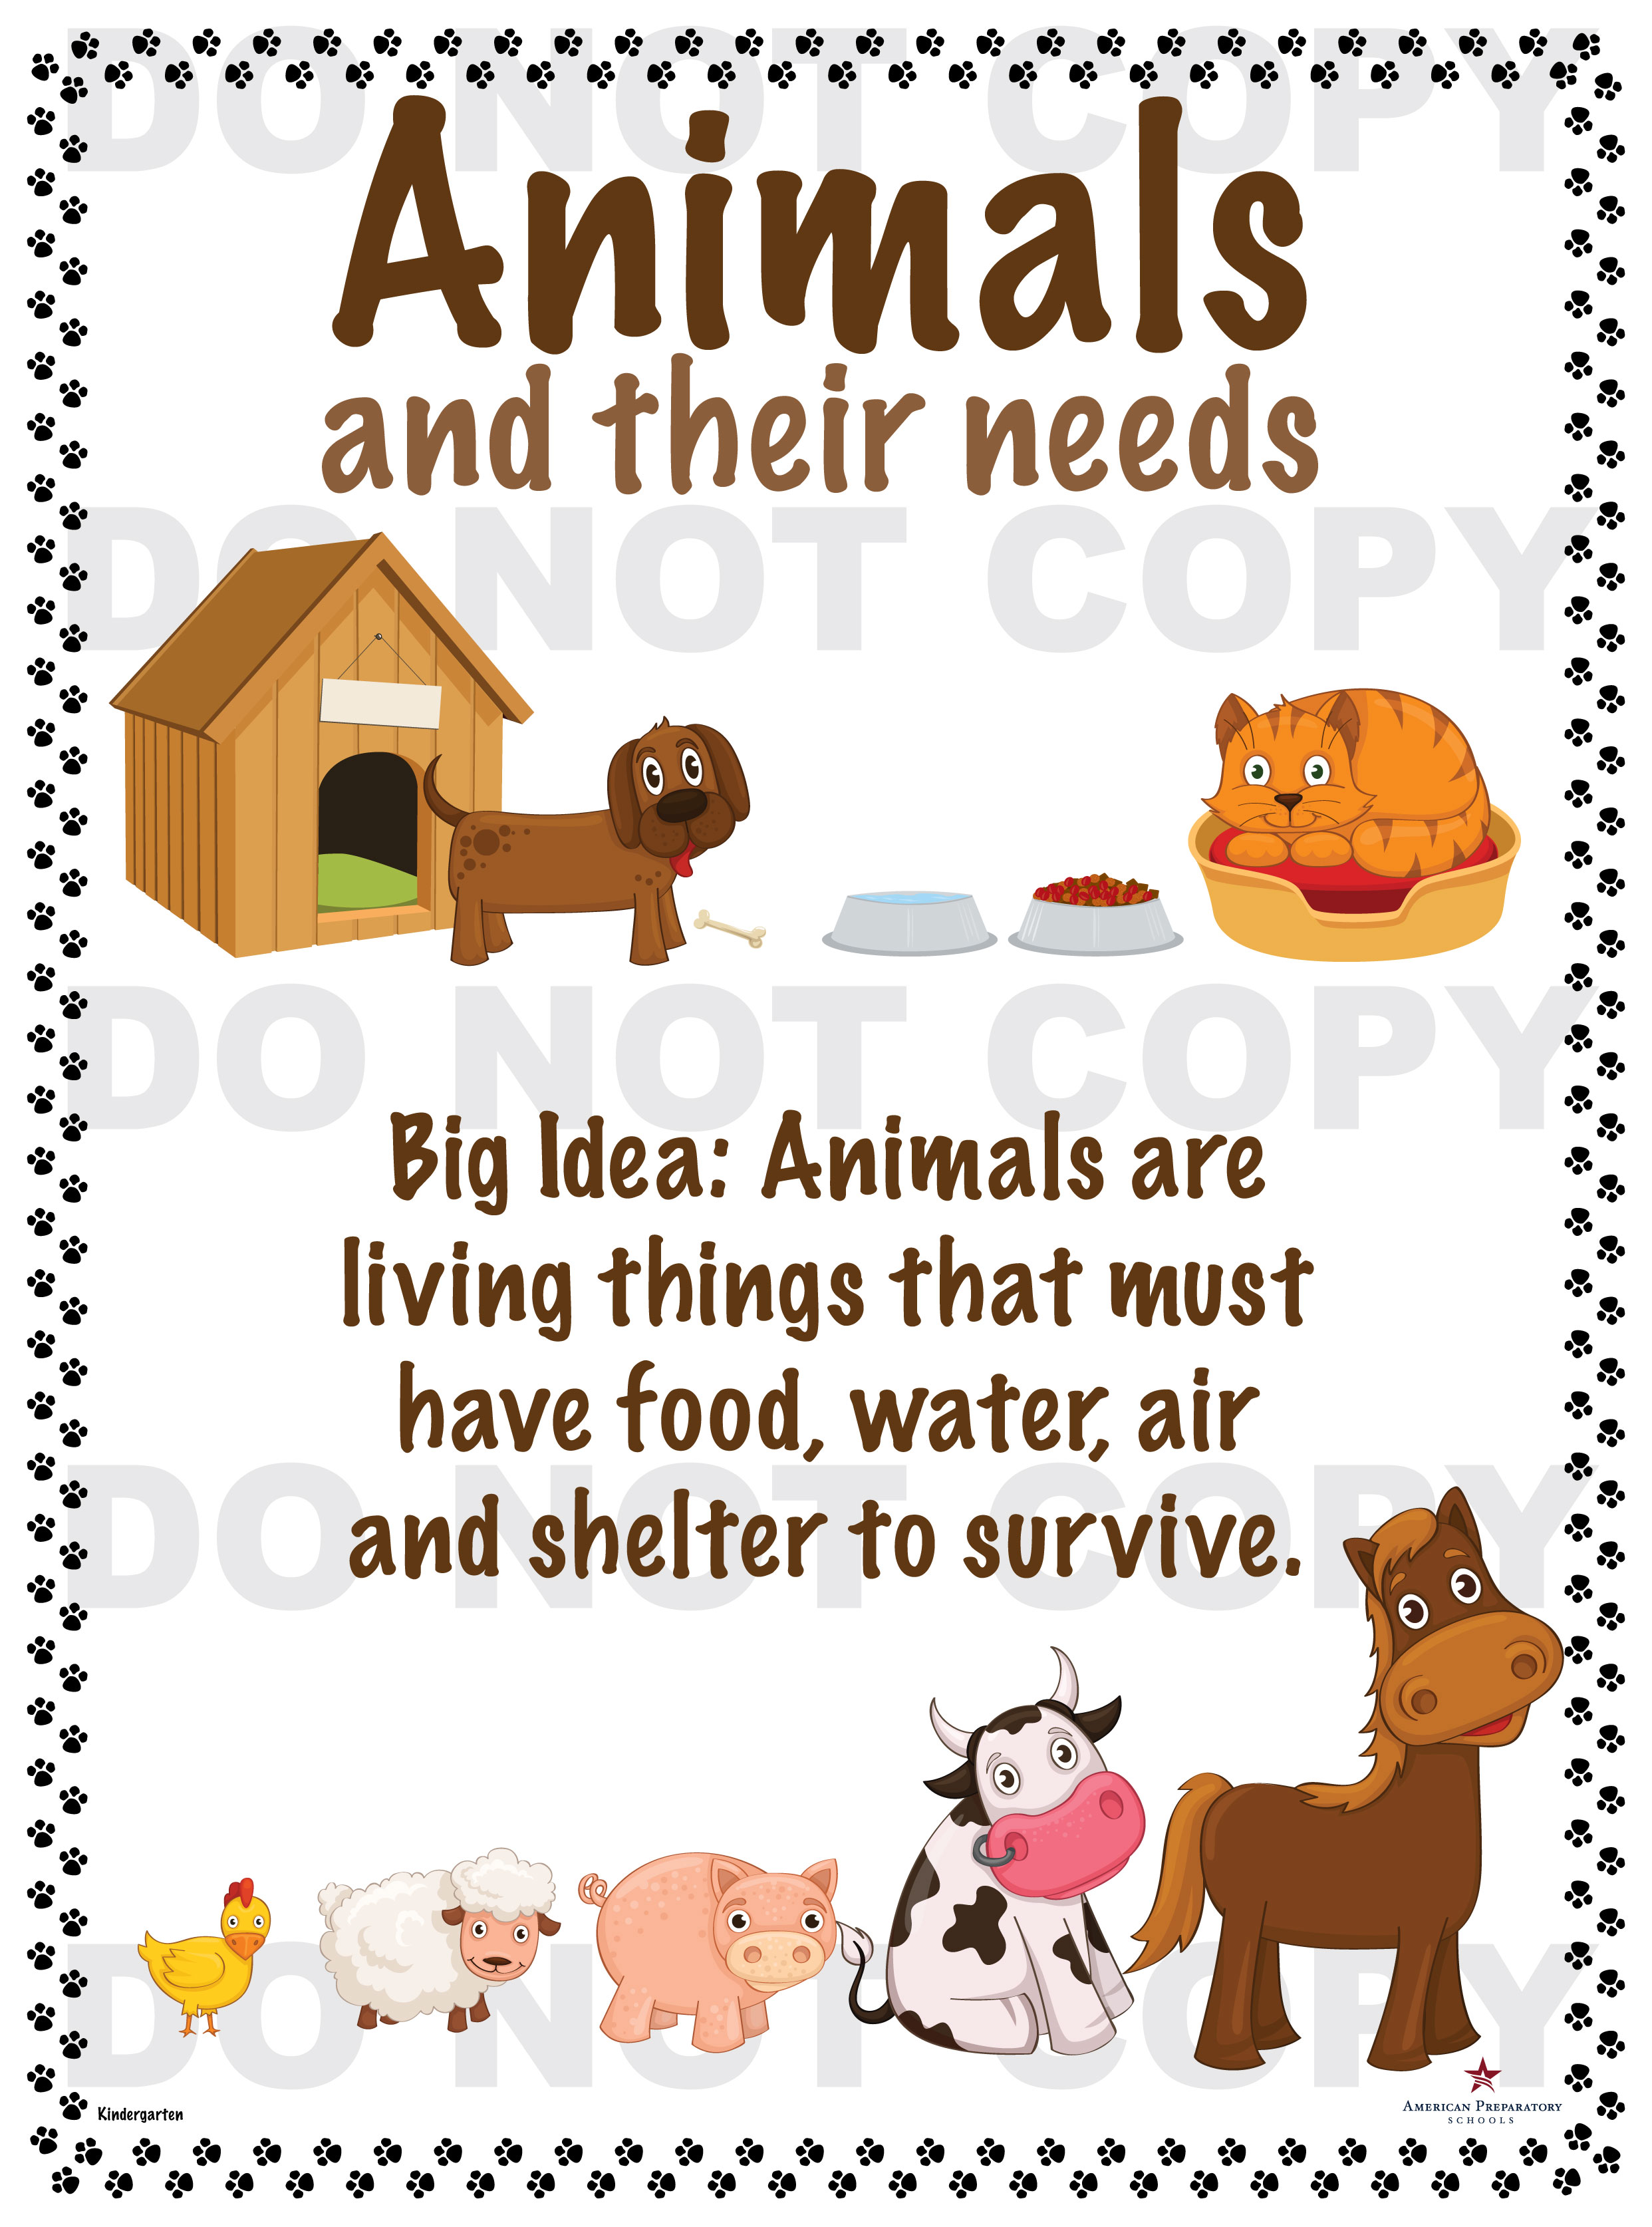 Animals and their needs.